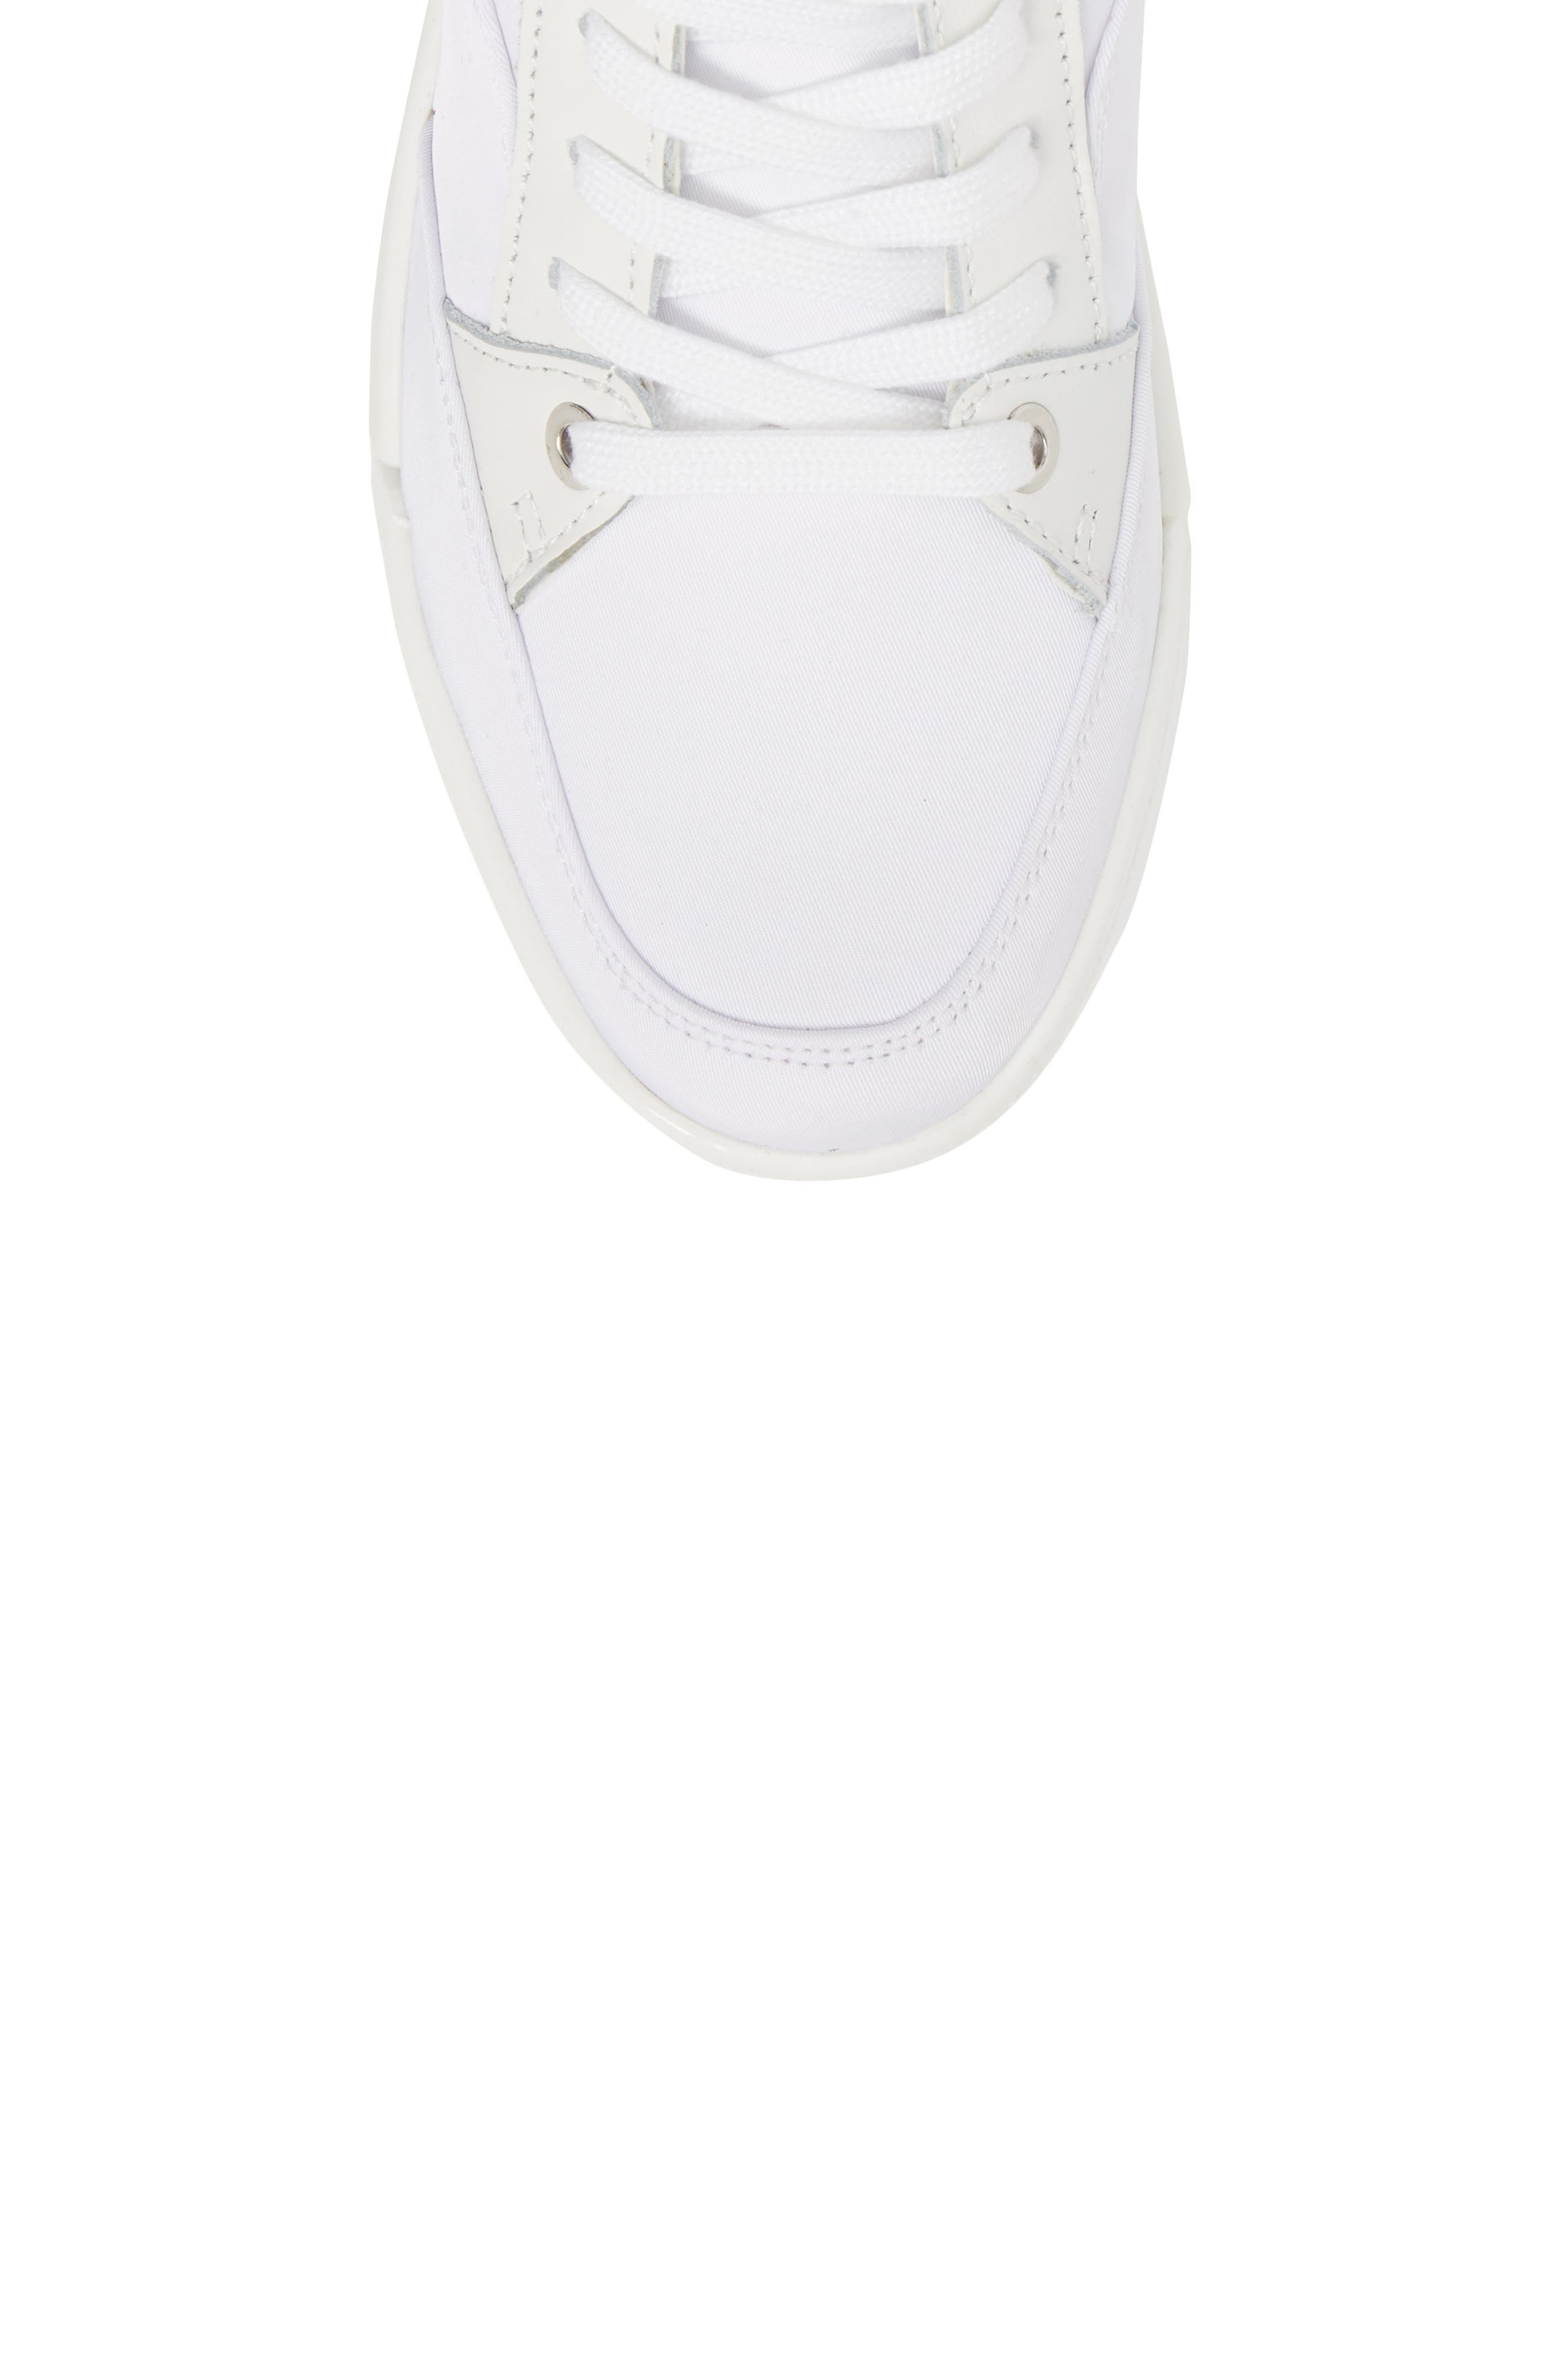 Nelda High Top Sneaker,                             Alternate thumbnail 5, color,                             WHITE LEATHER